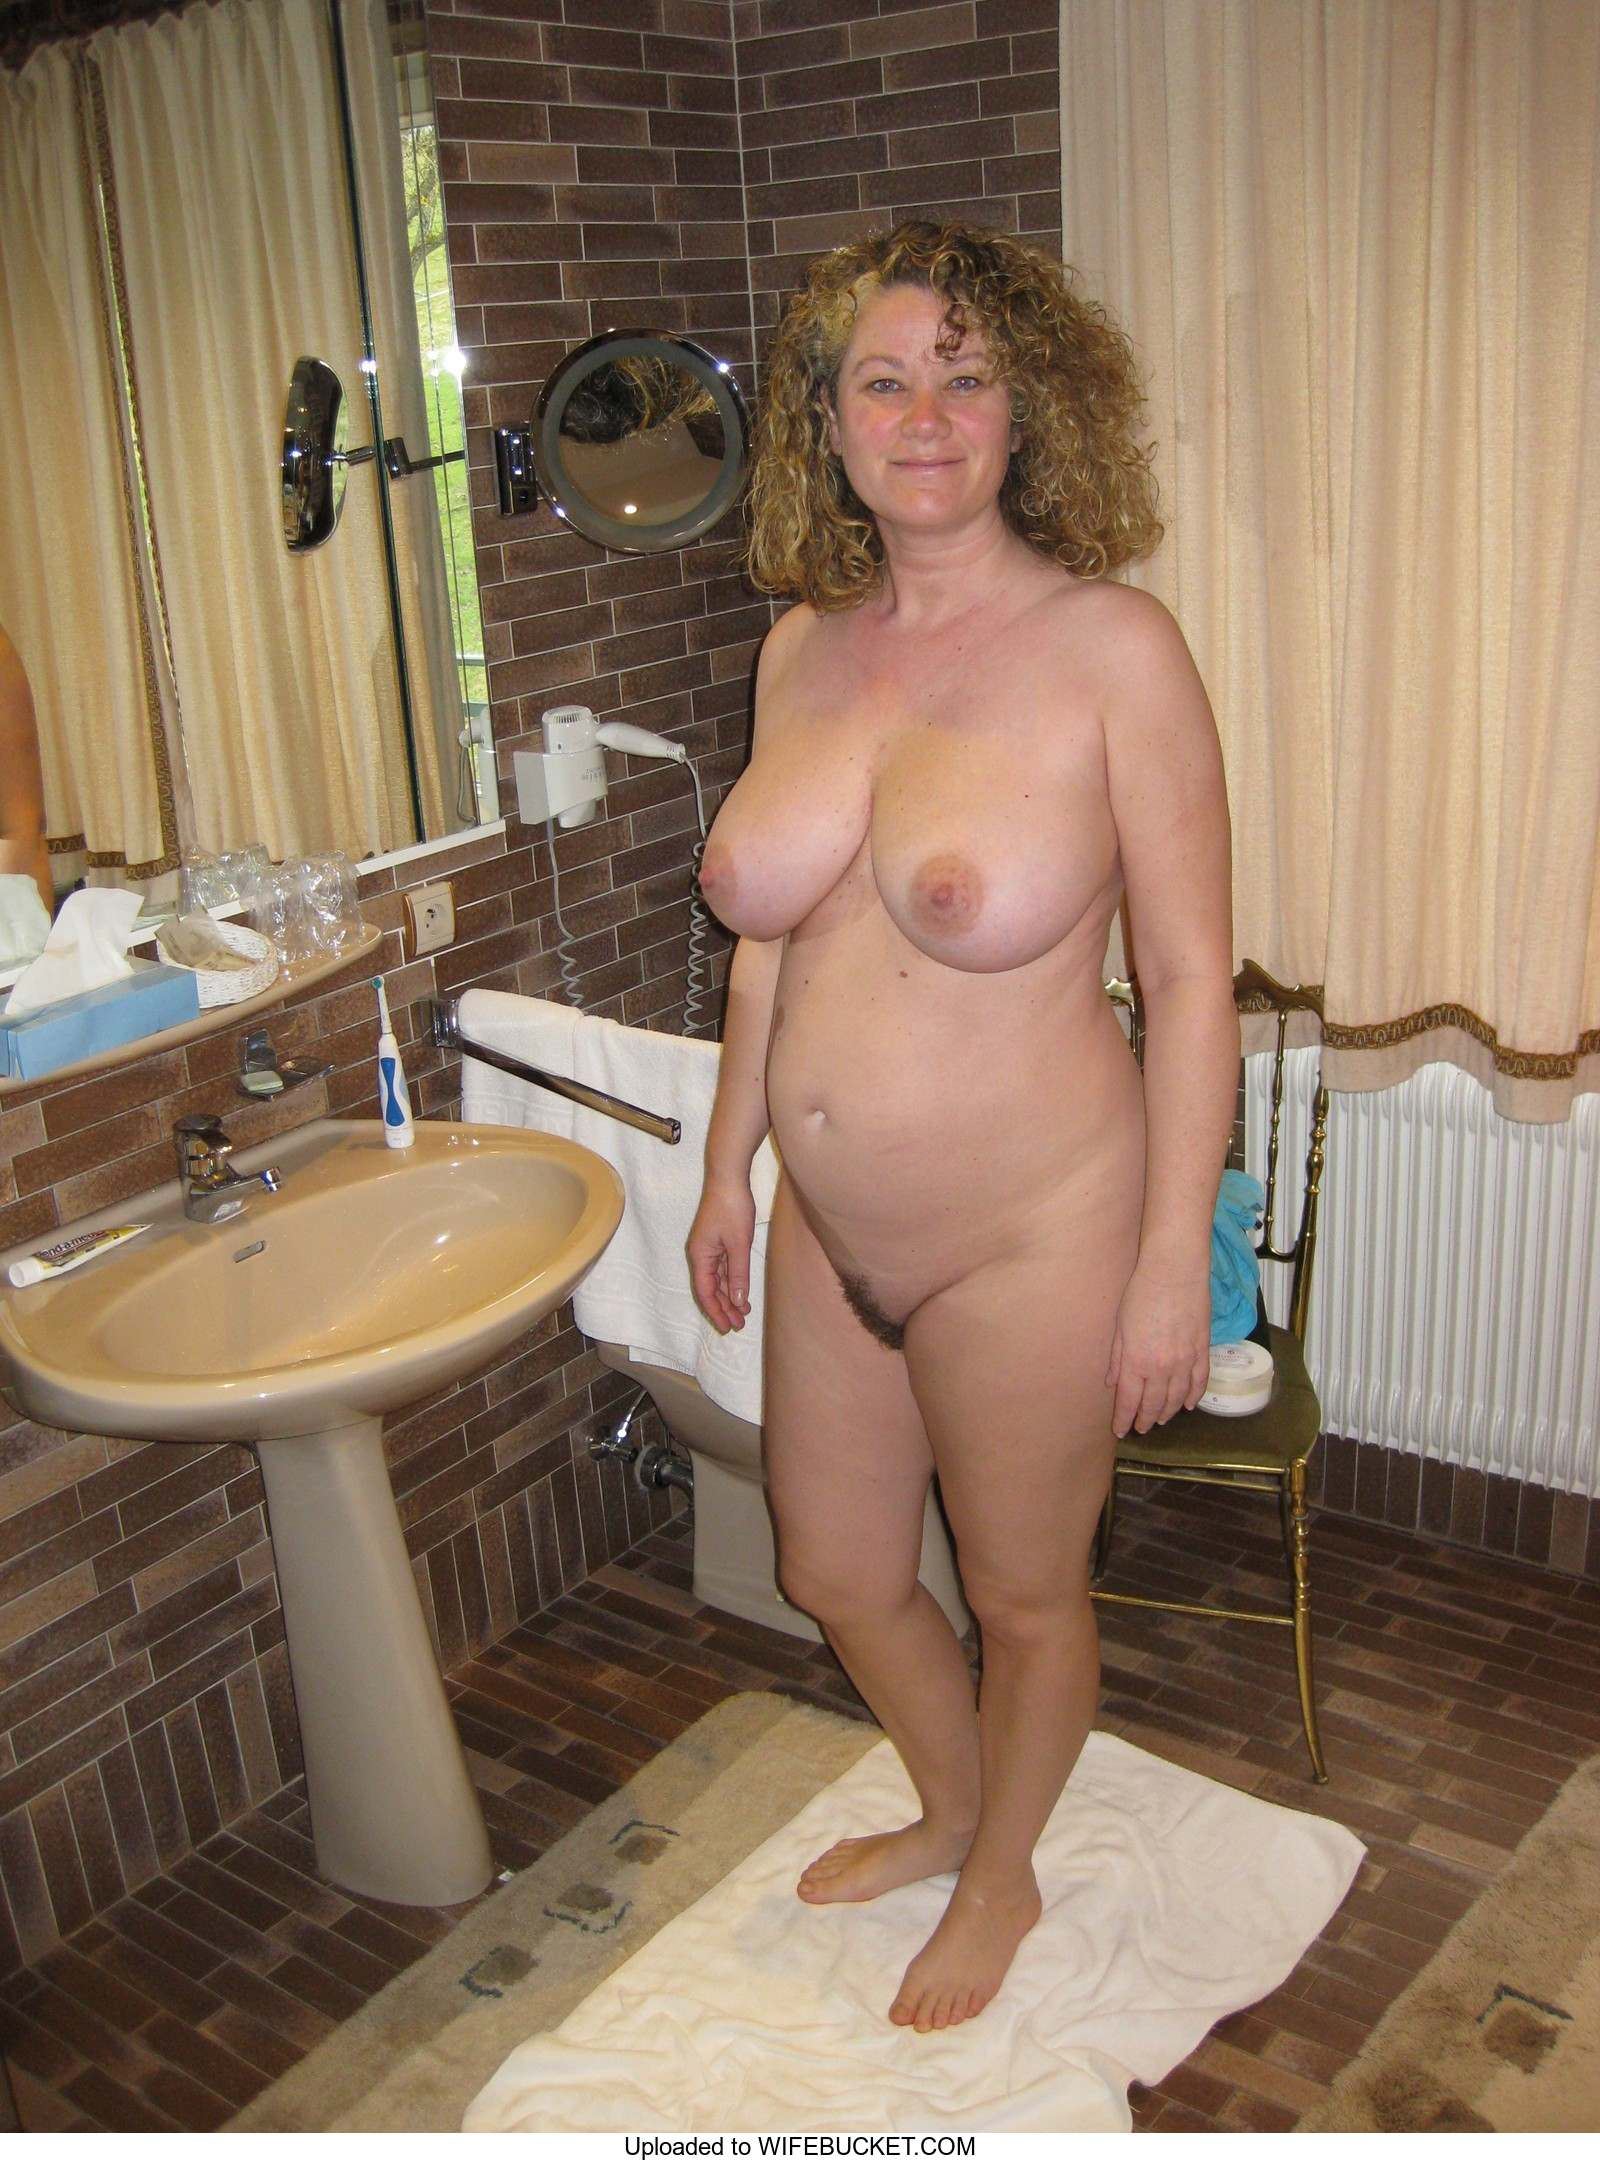 39 User-Uploaded Photos Of Real Wives Naked  Wifebucket  Offical Milf Blog-3569